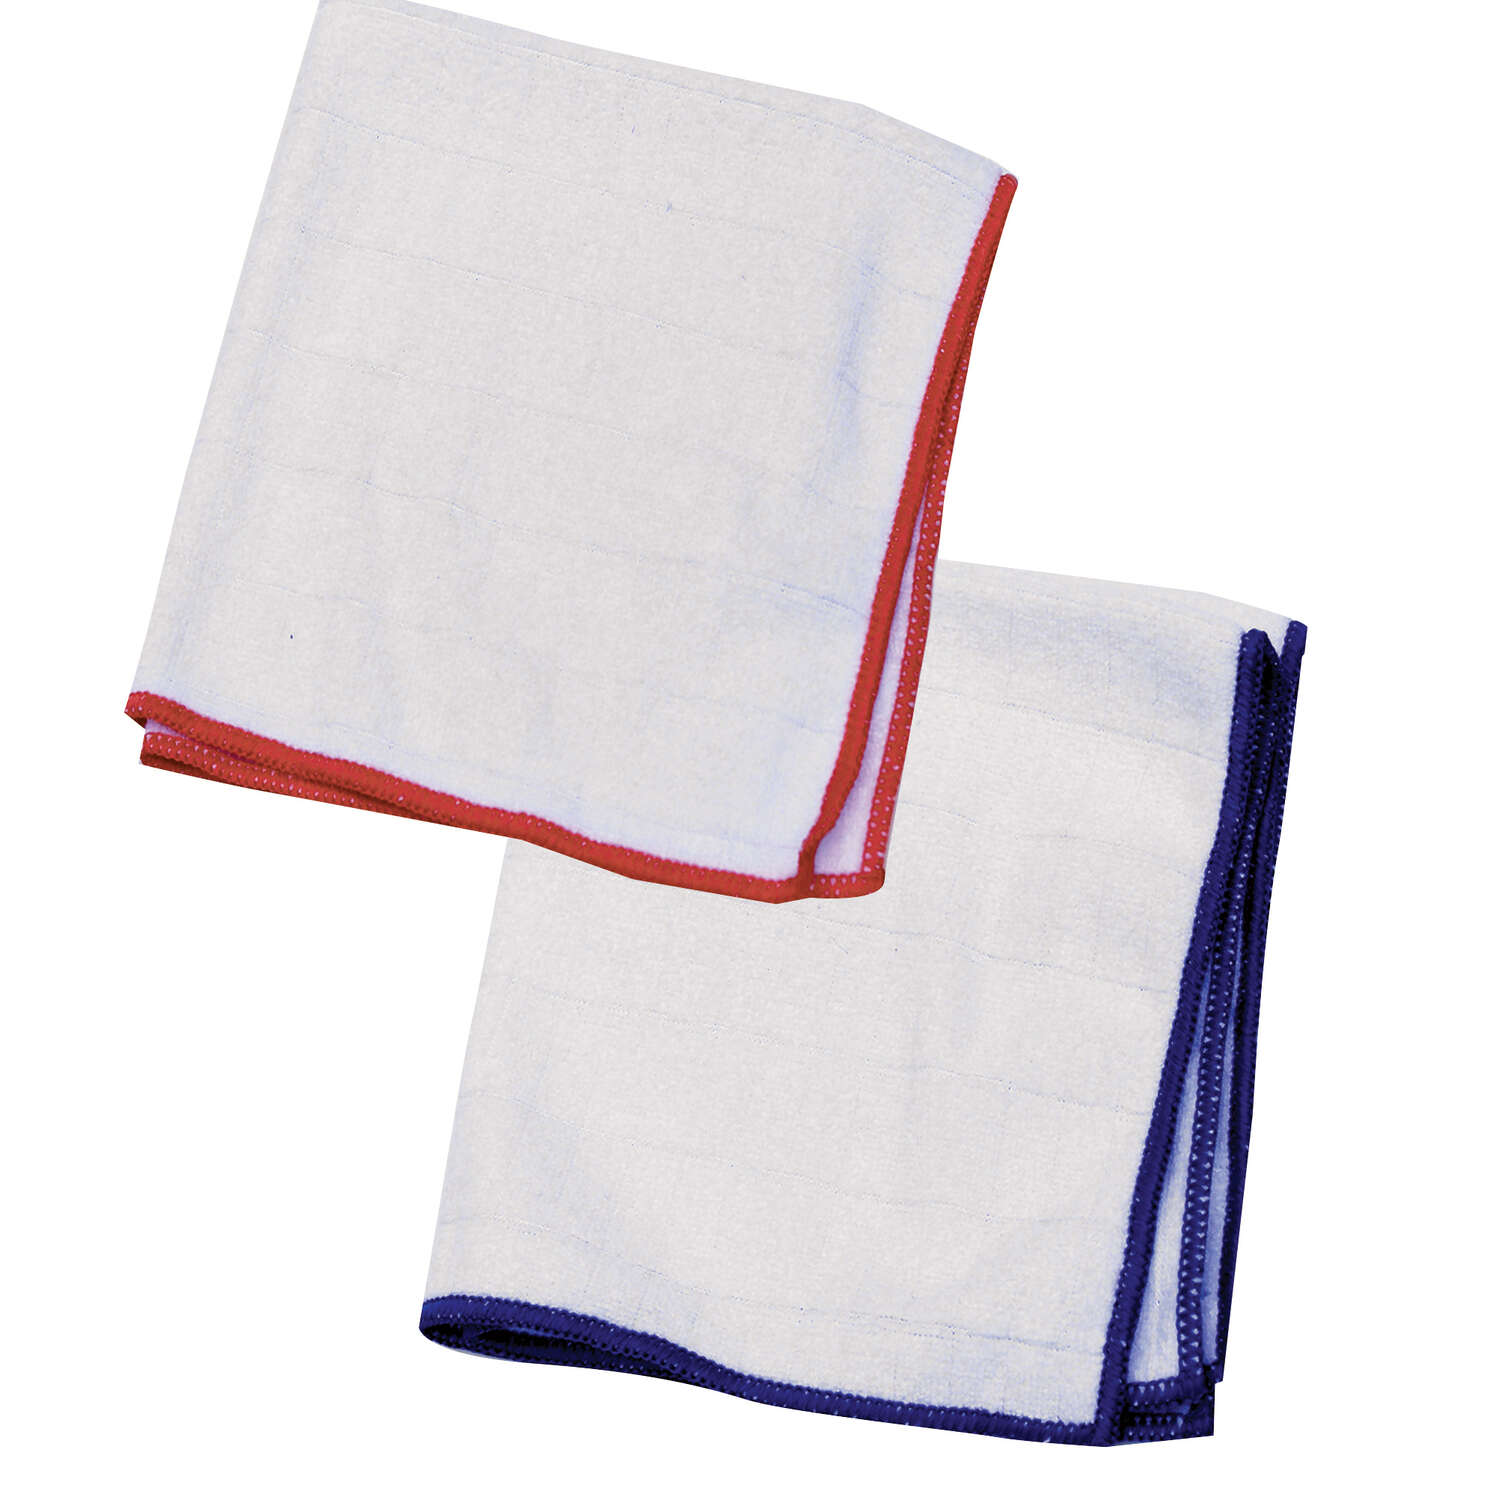 E-Cloth  Wash and Wipe Dish  Polyamide/Polyester  Cleaning Cloth  12-1/2 in. W x 12-1/2 in. L 2 pk